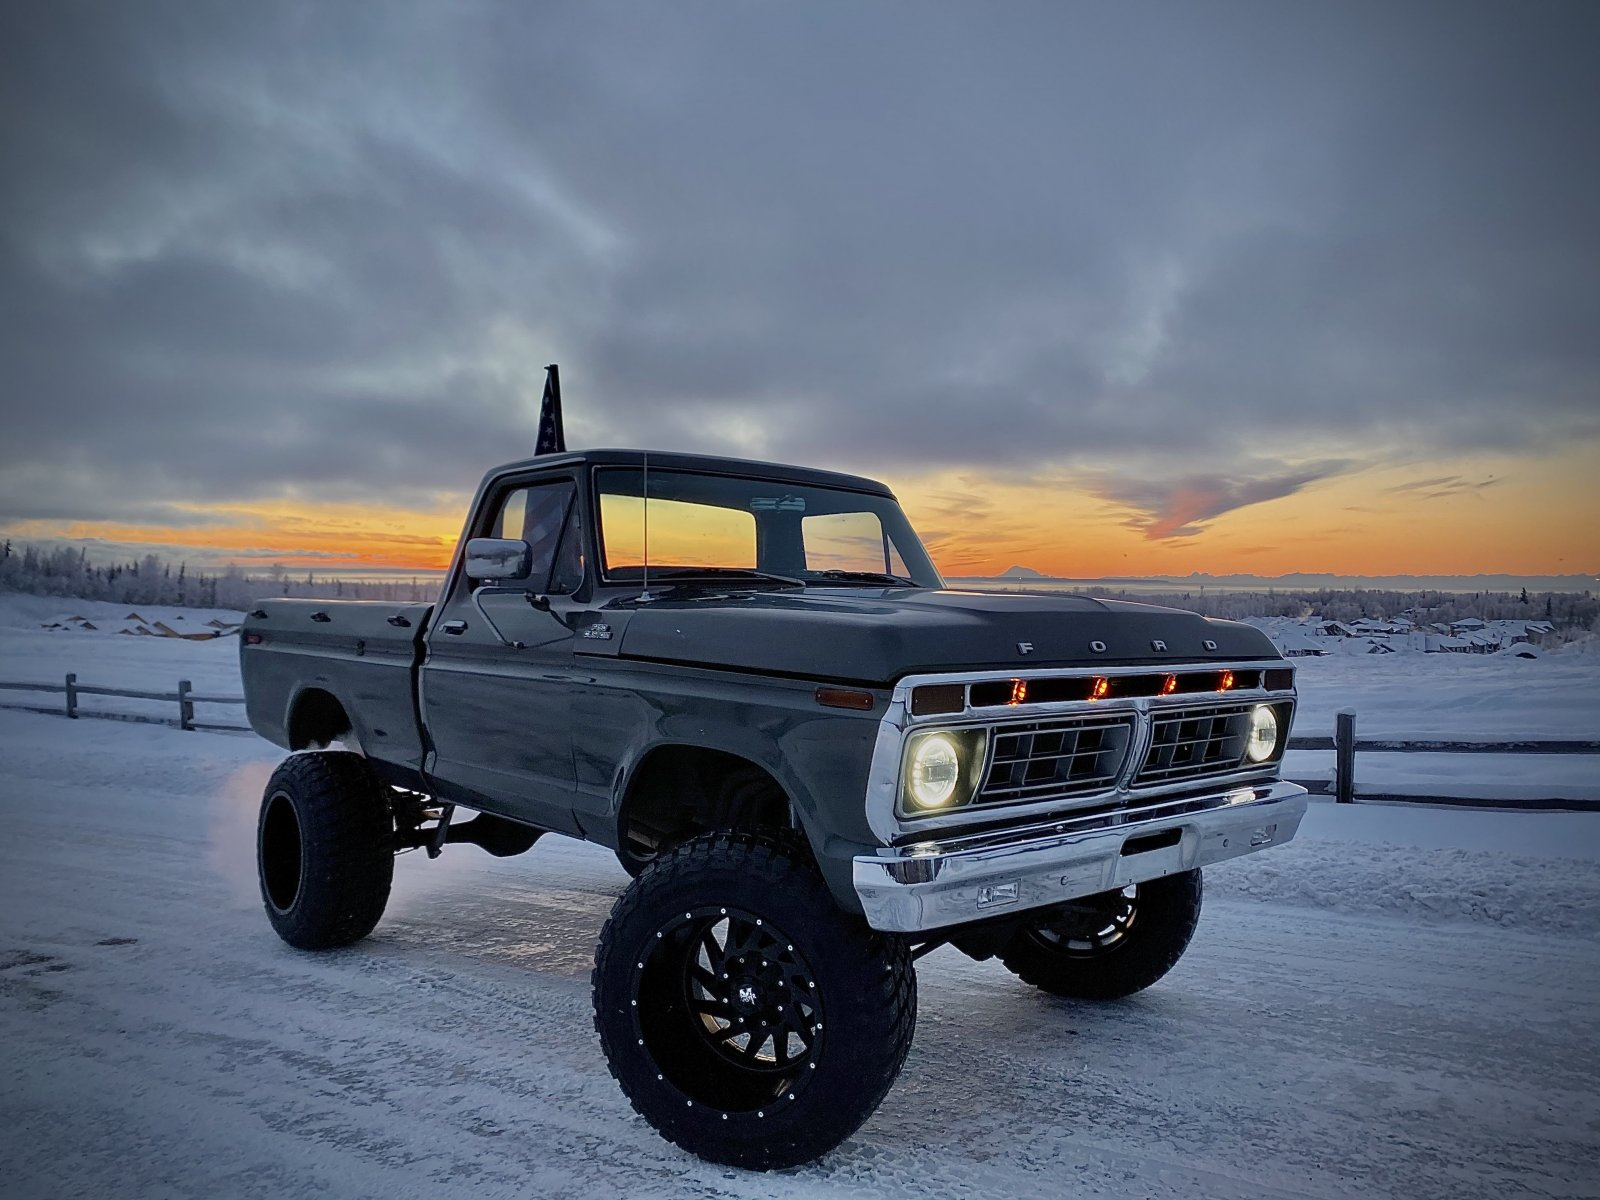 16 Year Old Built His Dream Truck 1977 Ford F150 7.jpeg